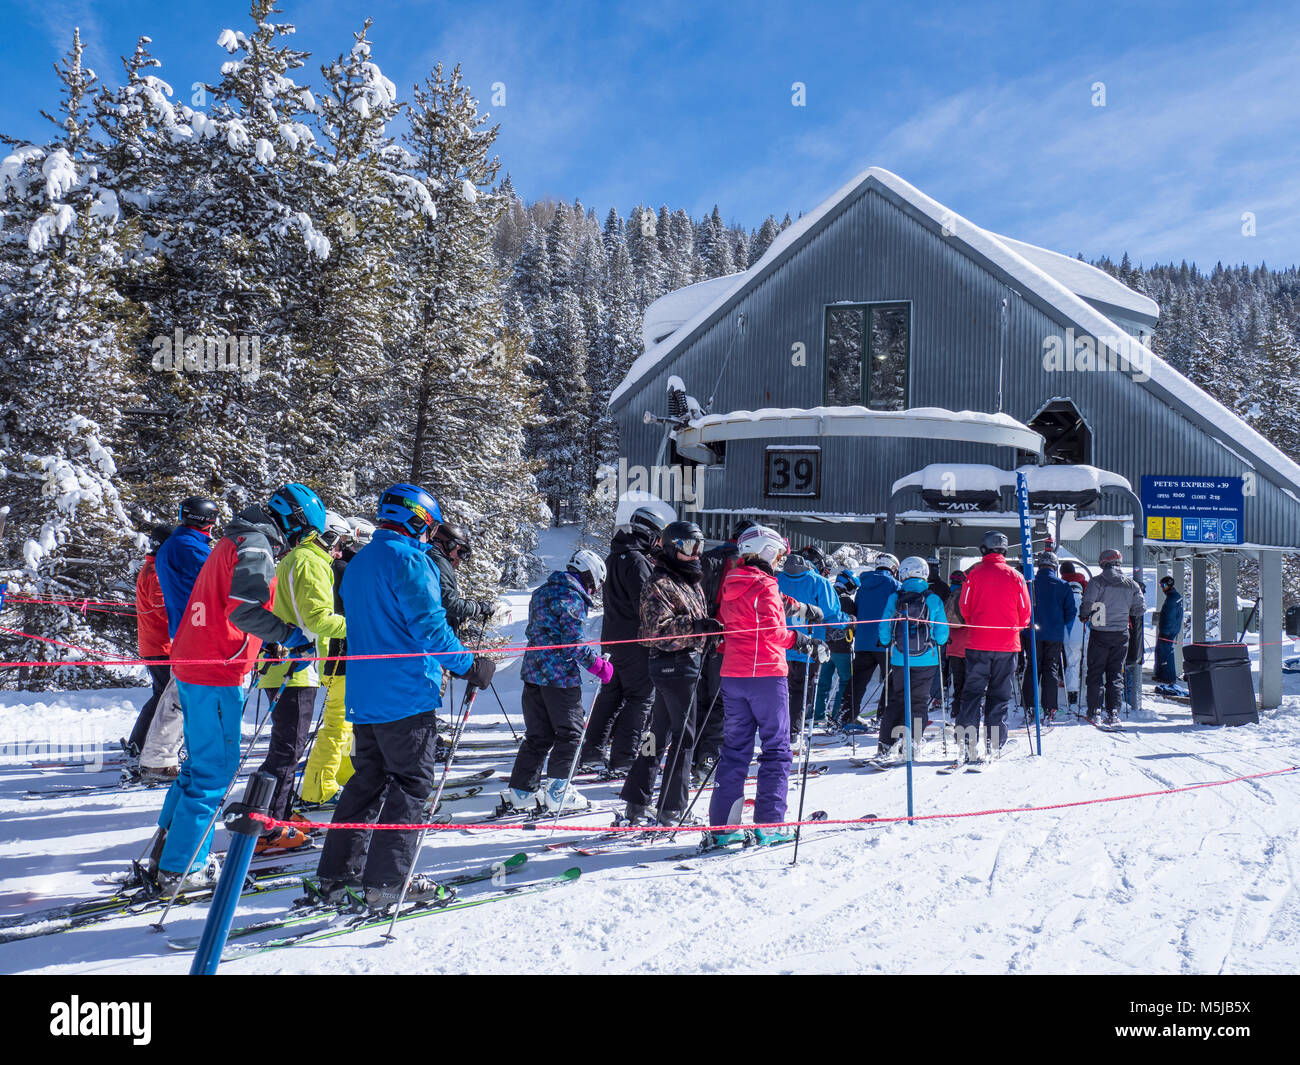 Lift line at Pete's Express Lift 39, winter, Blue Sky Basin, Vail Ski Resort, Vail, Colorado. - Stock Image